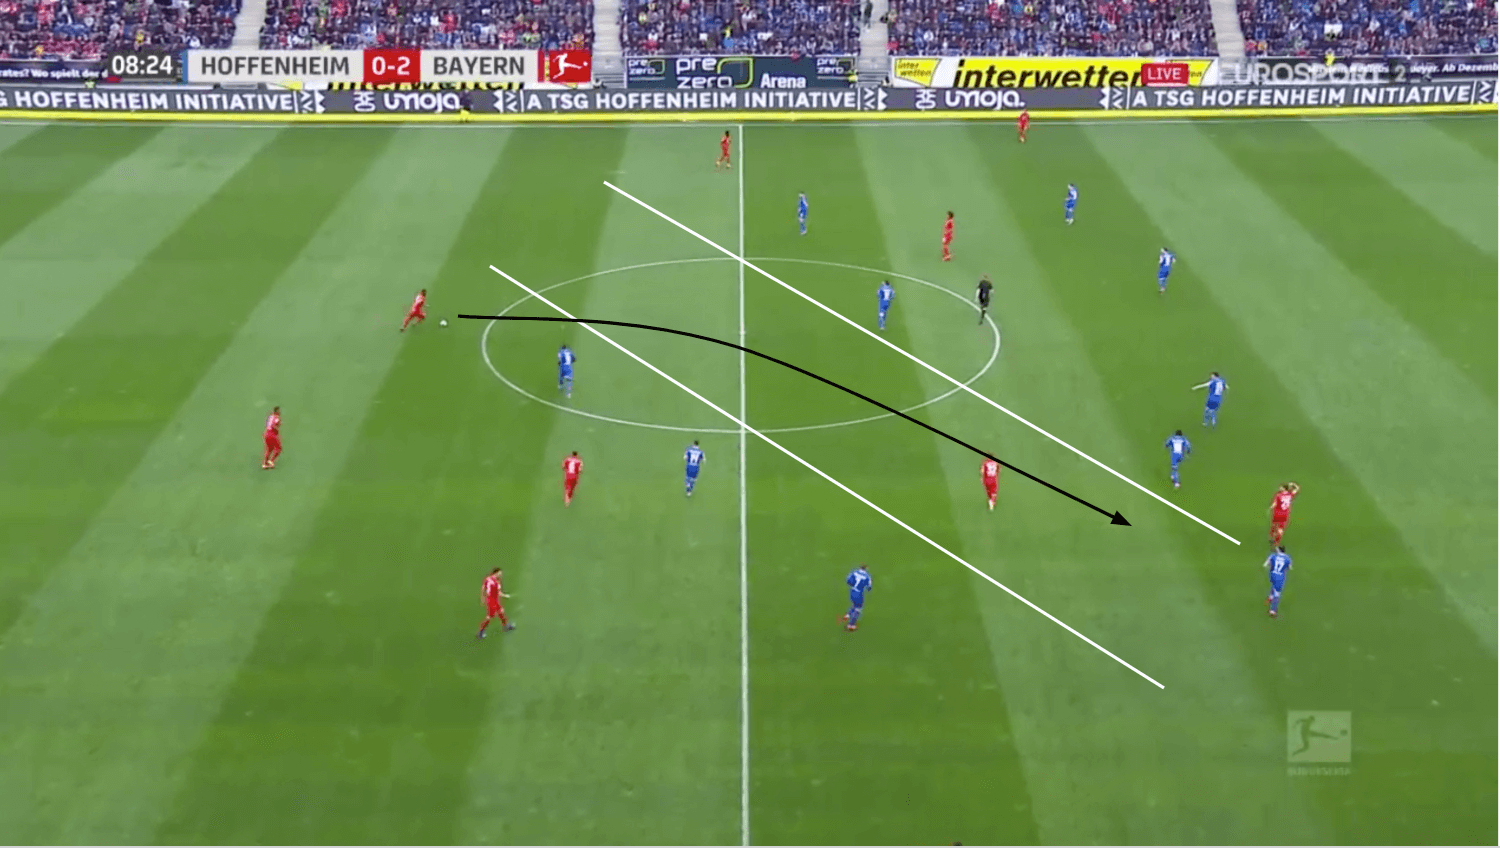 Bundesliga 19/20: Bayern Munich vs Hoffenheim - tactical analysis tactics